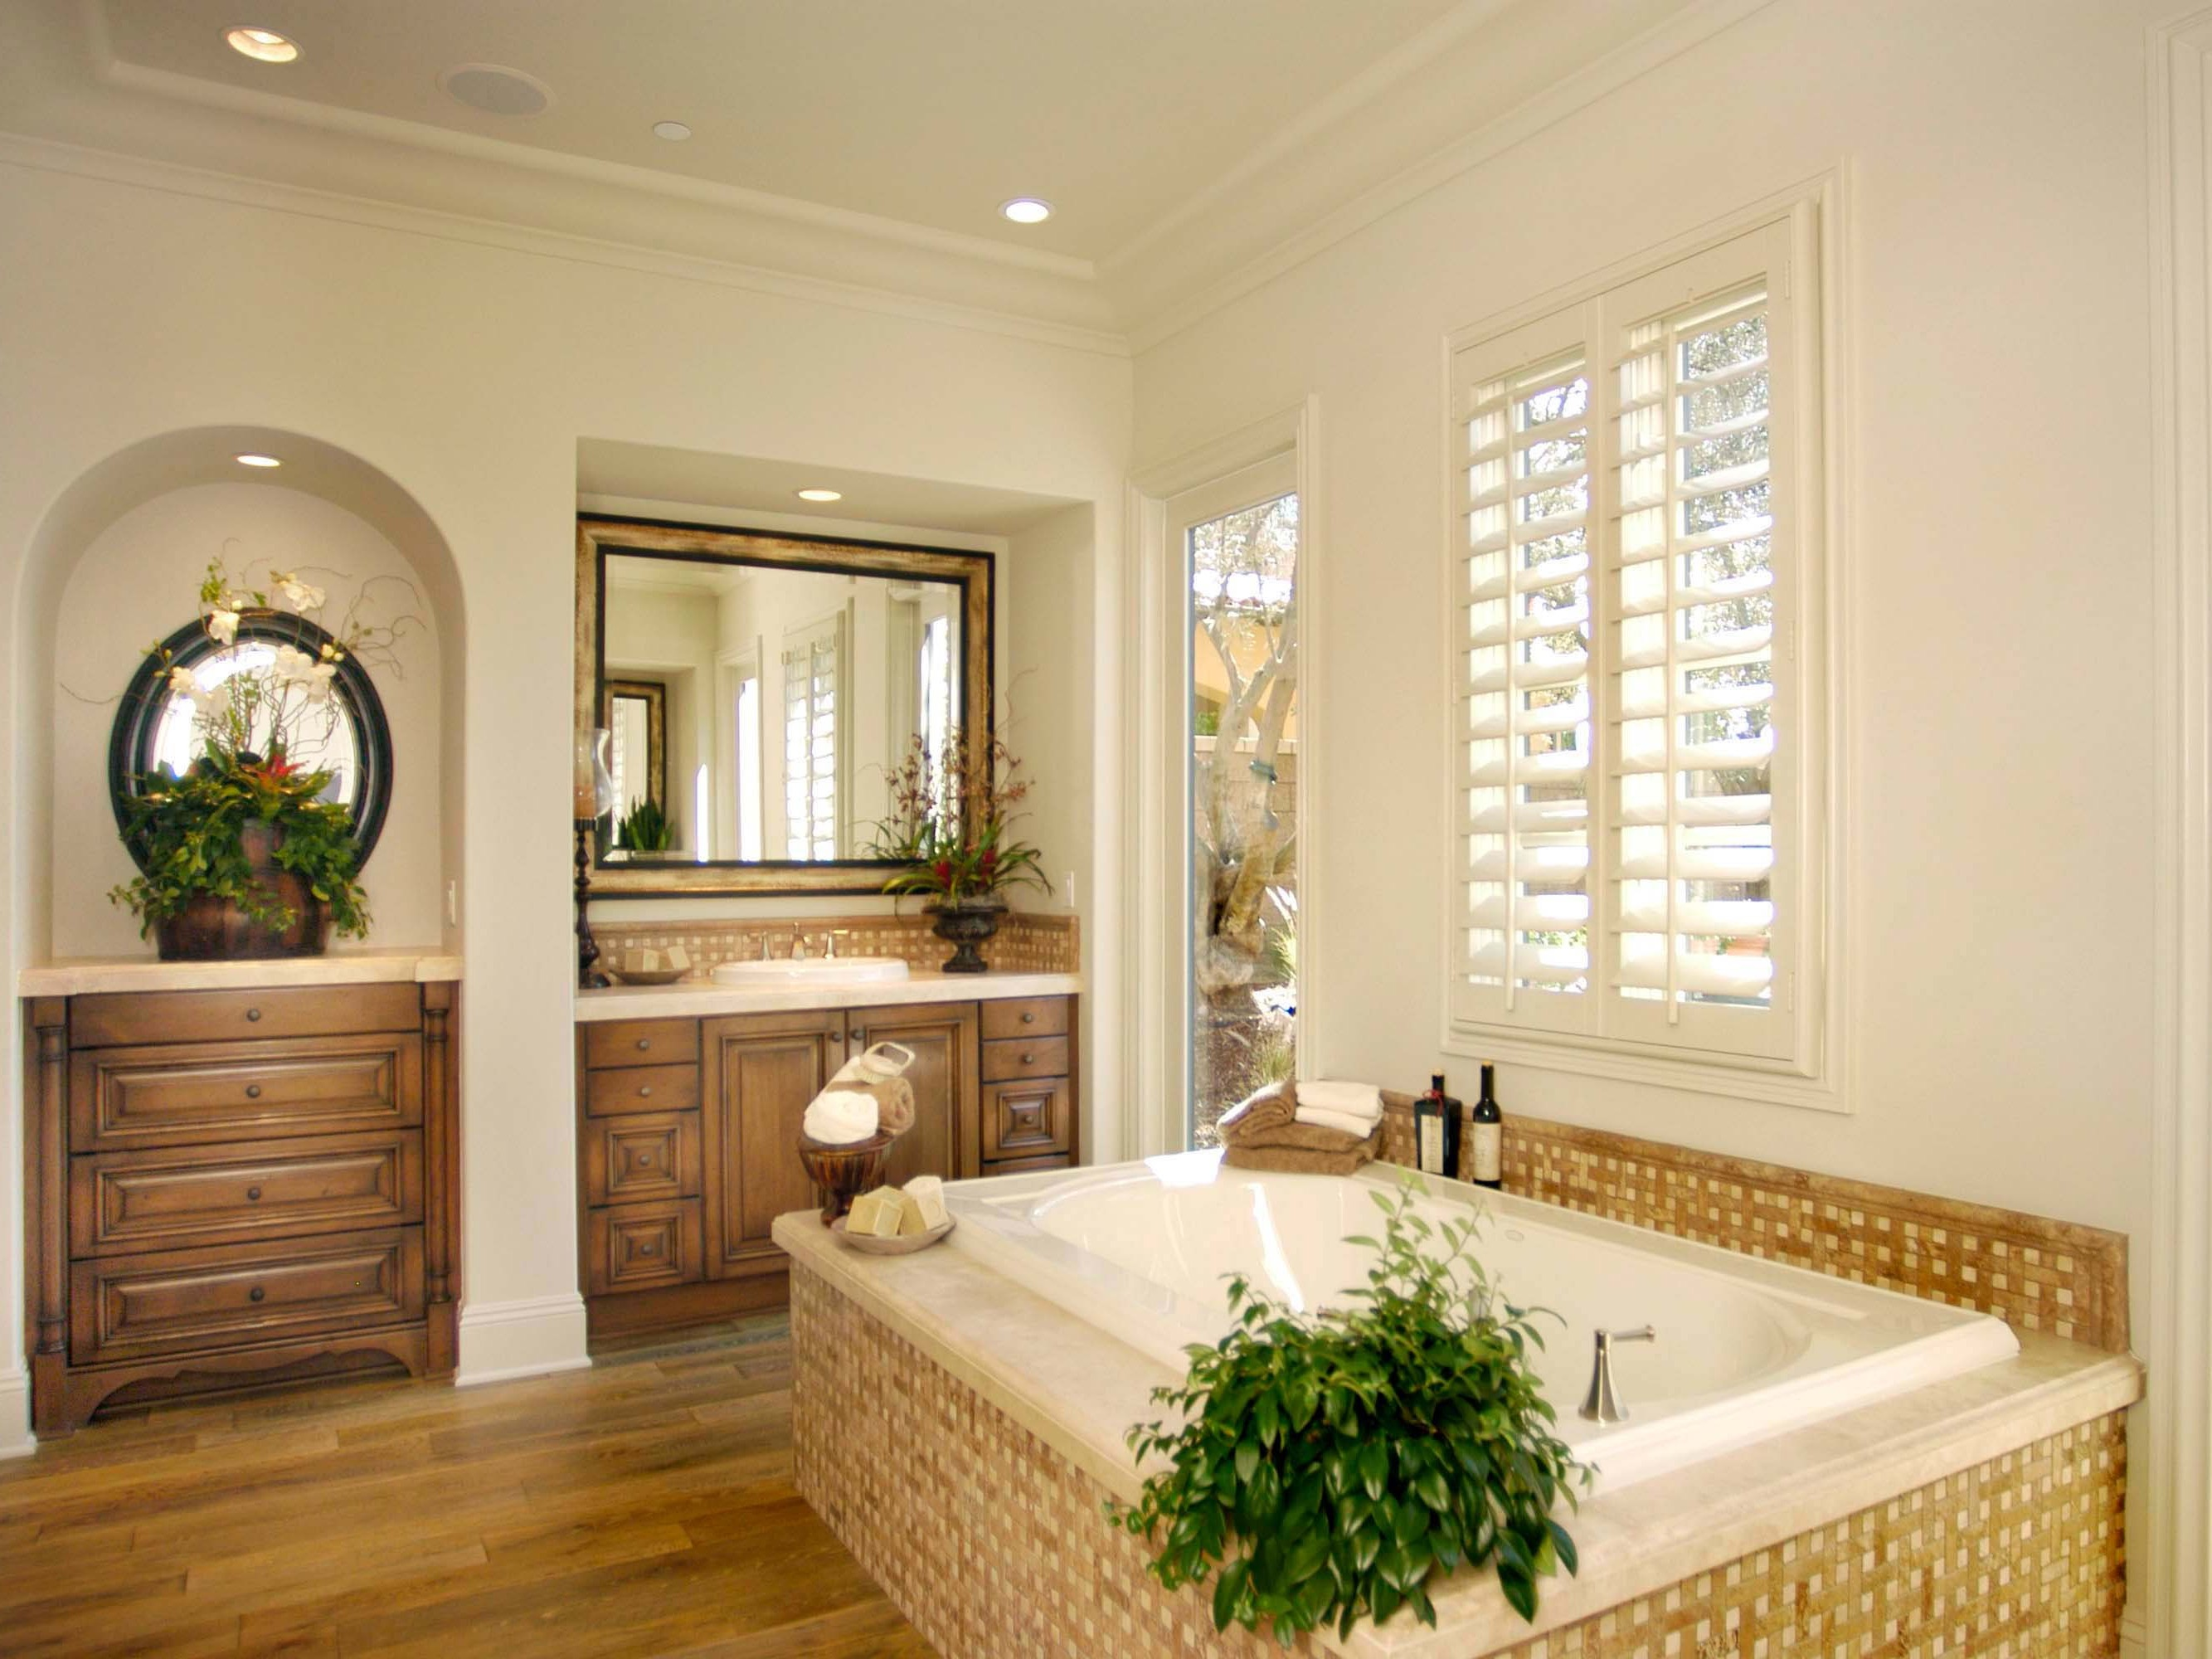 Classic Cabana Bathroom With Natural Bamboo Floor And Wicker Tub (Image 6 of 29)